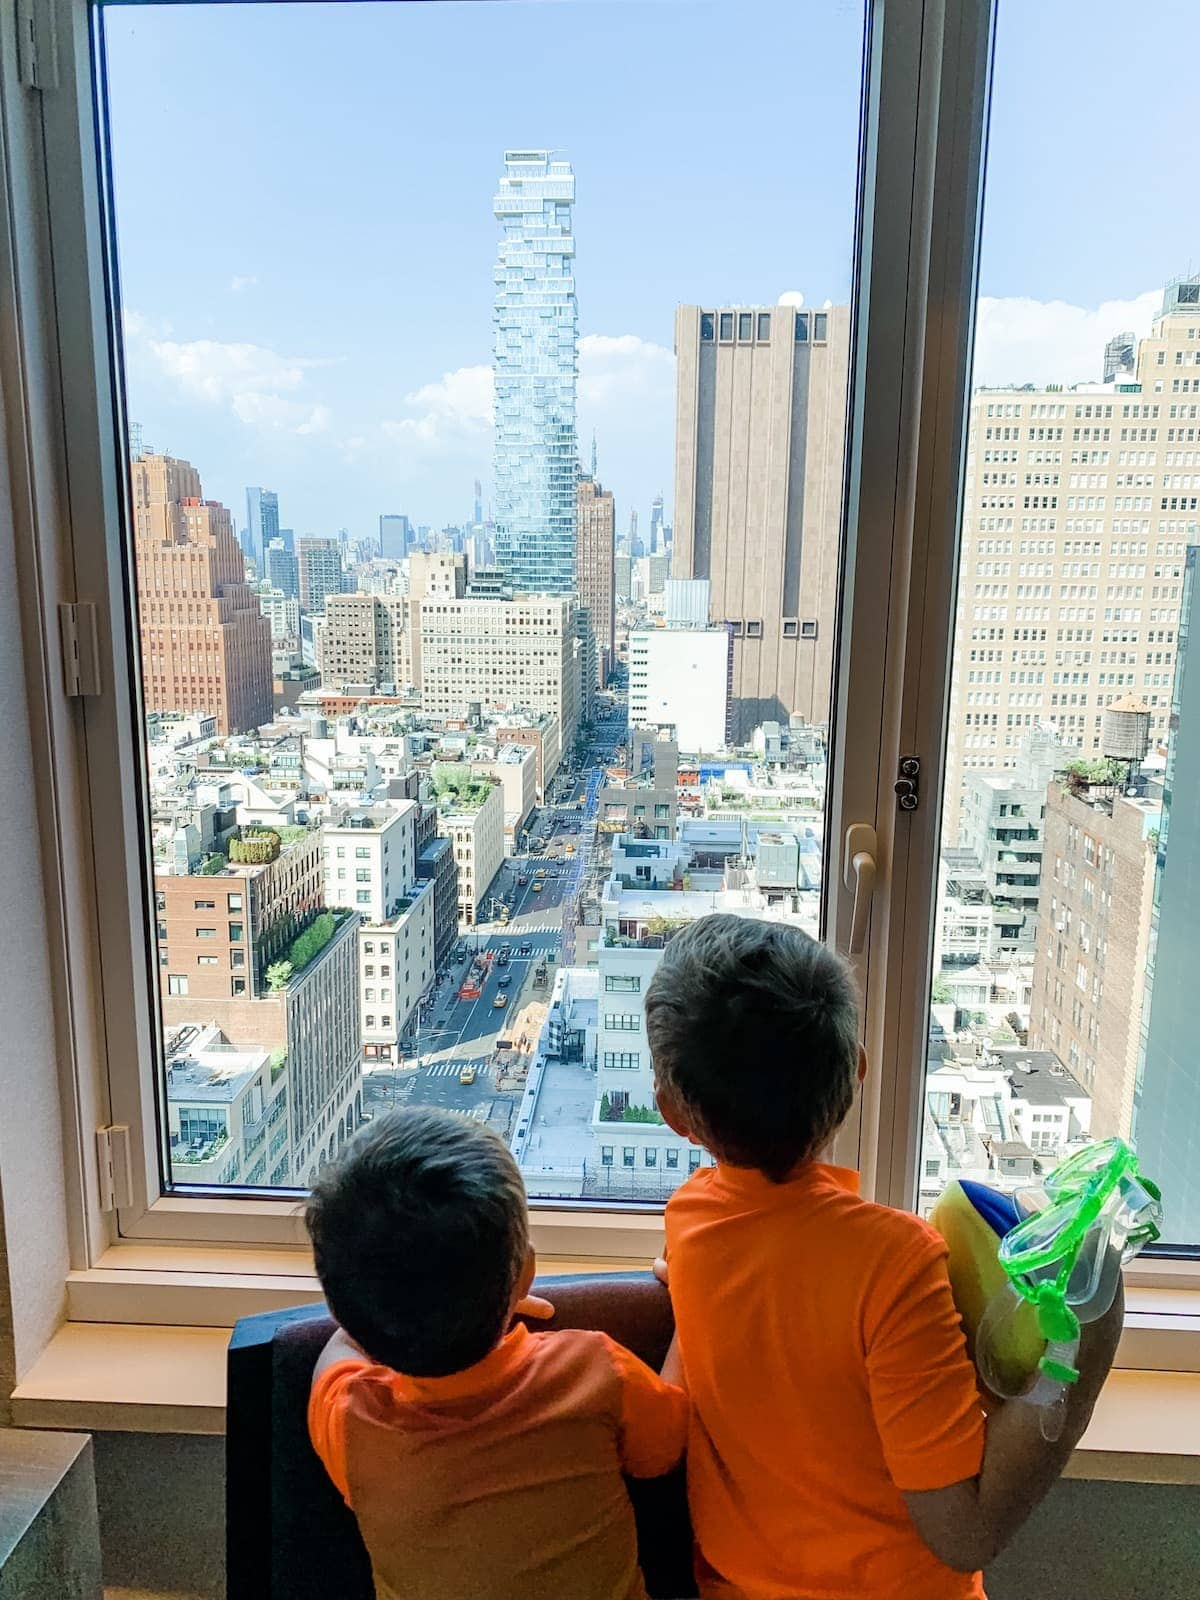 The boys looking outside a window to the city